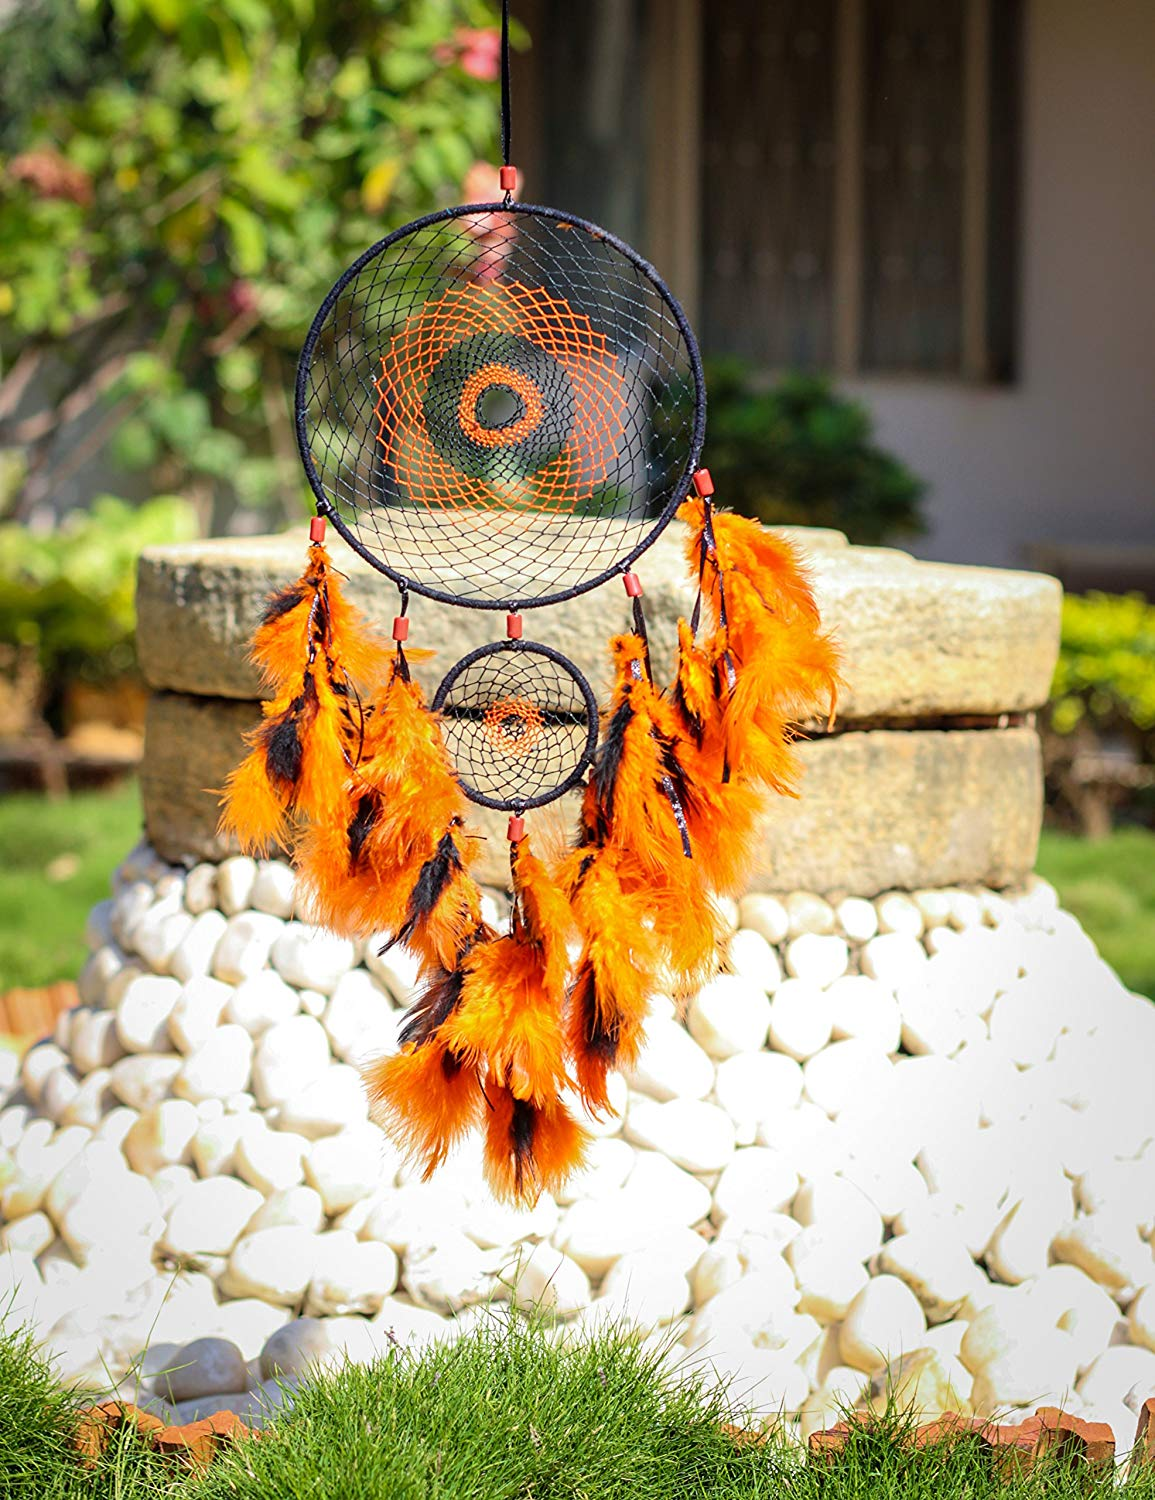 Intricate Web Design Dream Catchers - BohoEntice